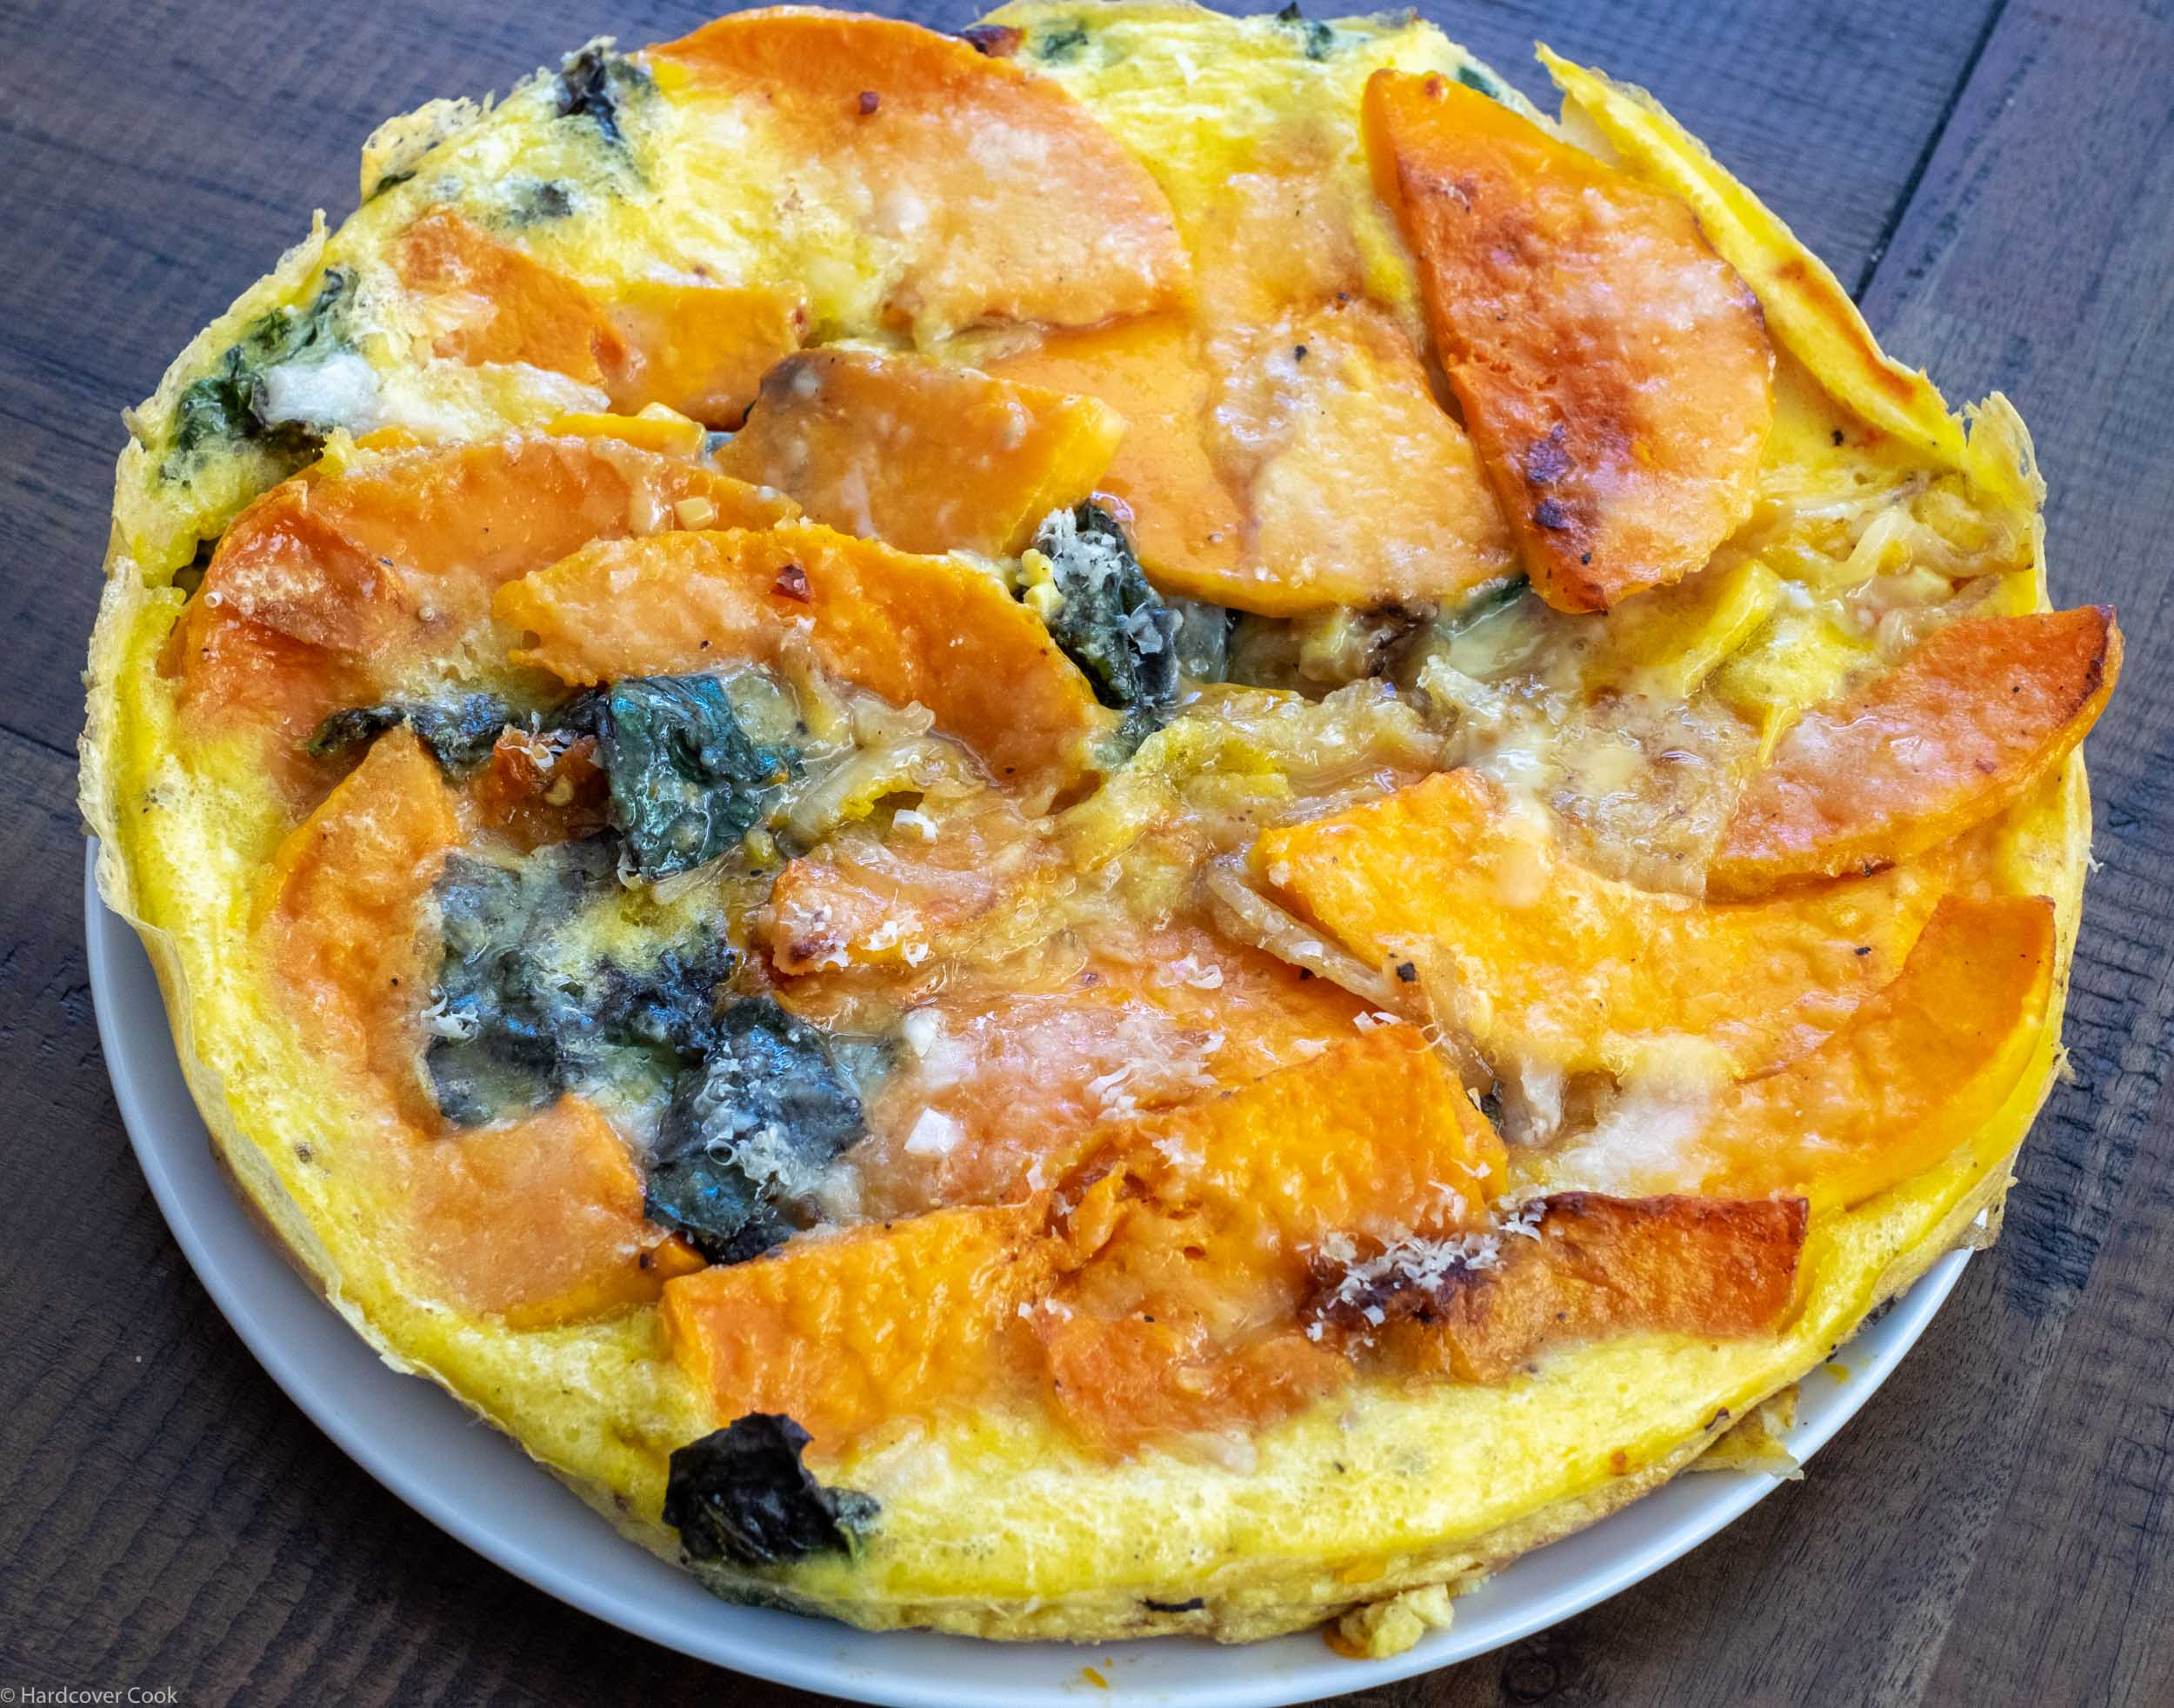 Slow-cooked-dozen-egg-frittata-from-where-cooking-begins.jpg